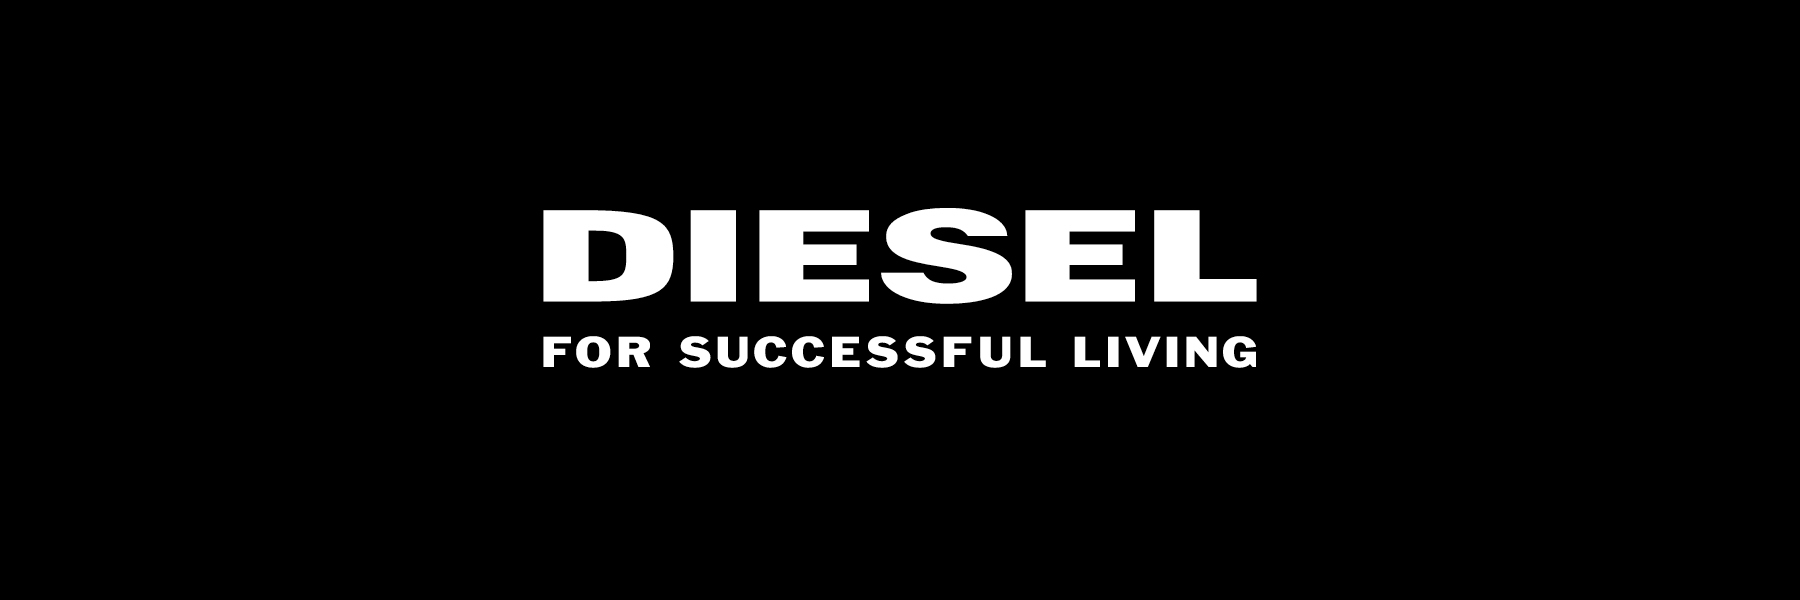 Diesel for successful living